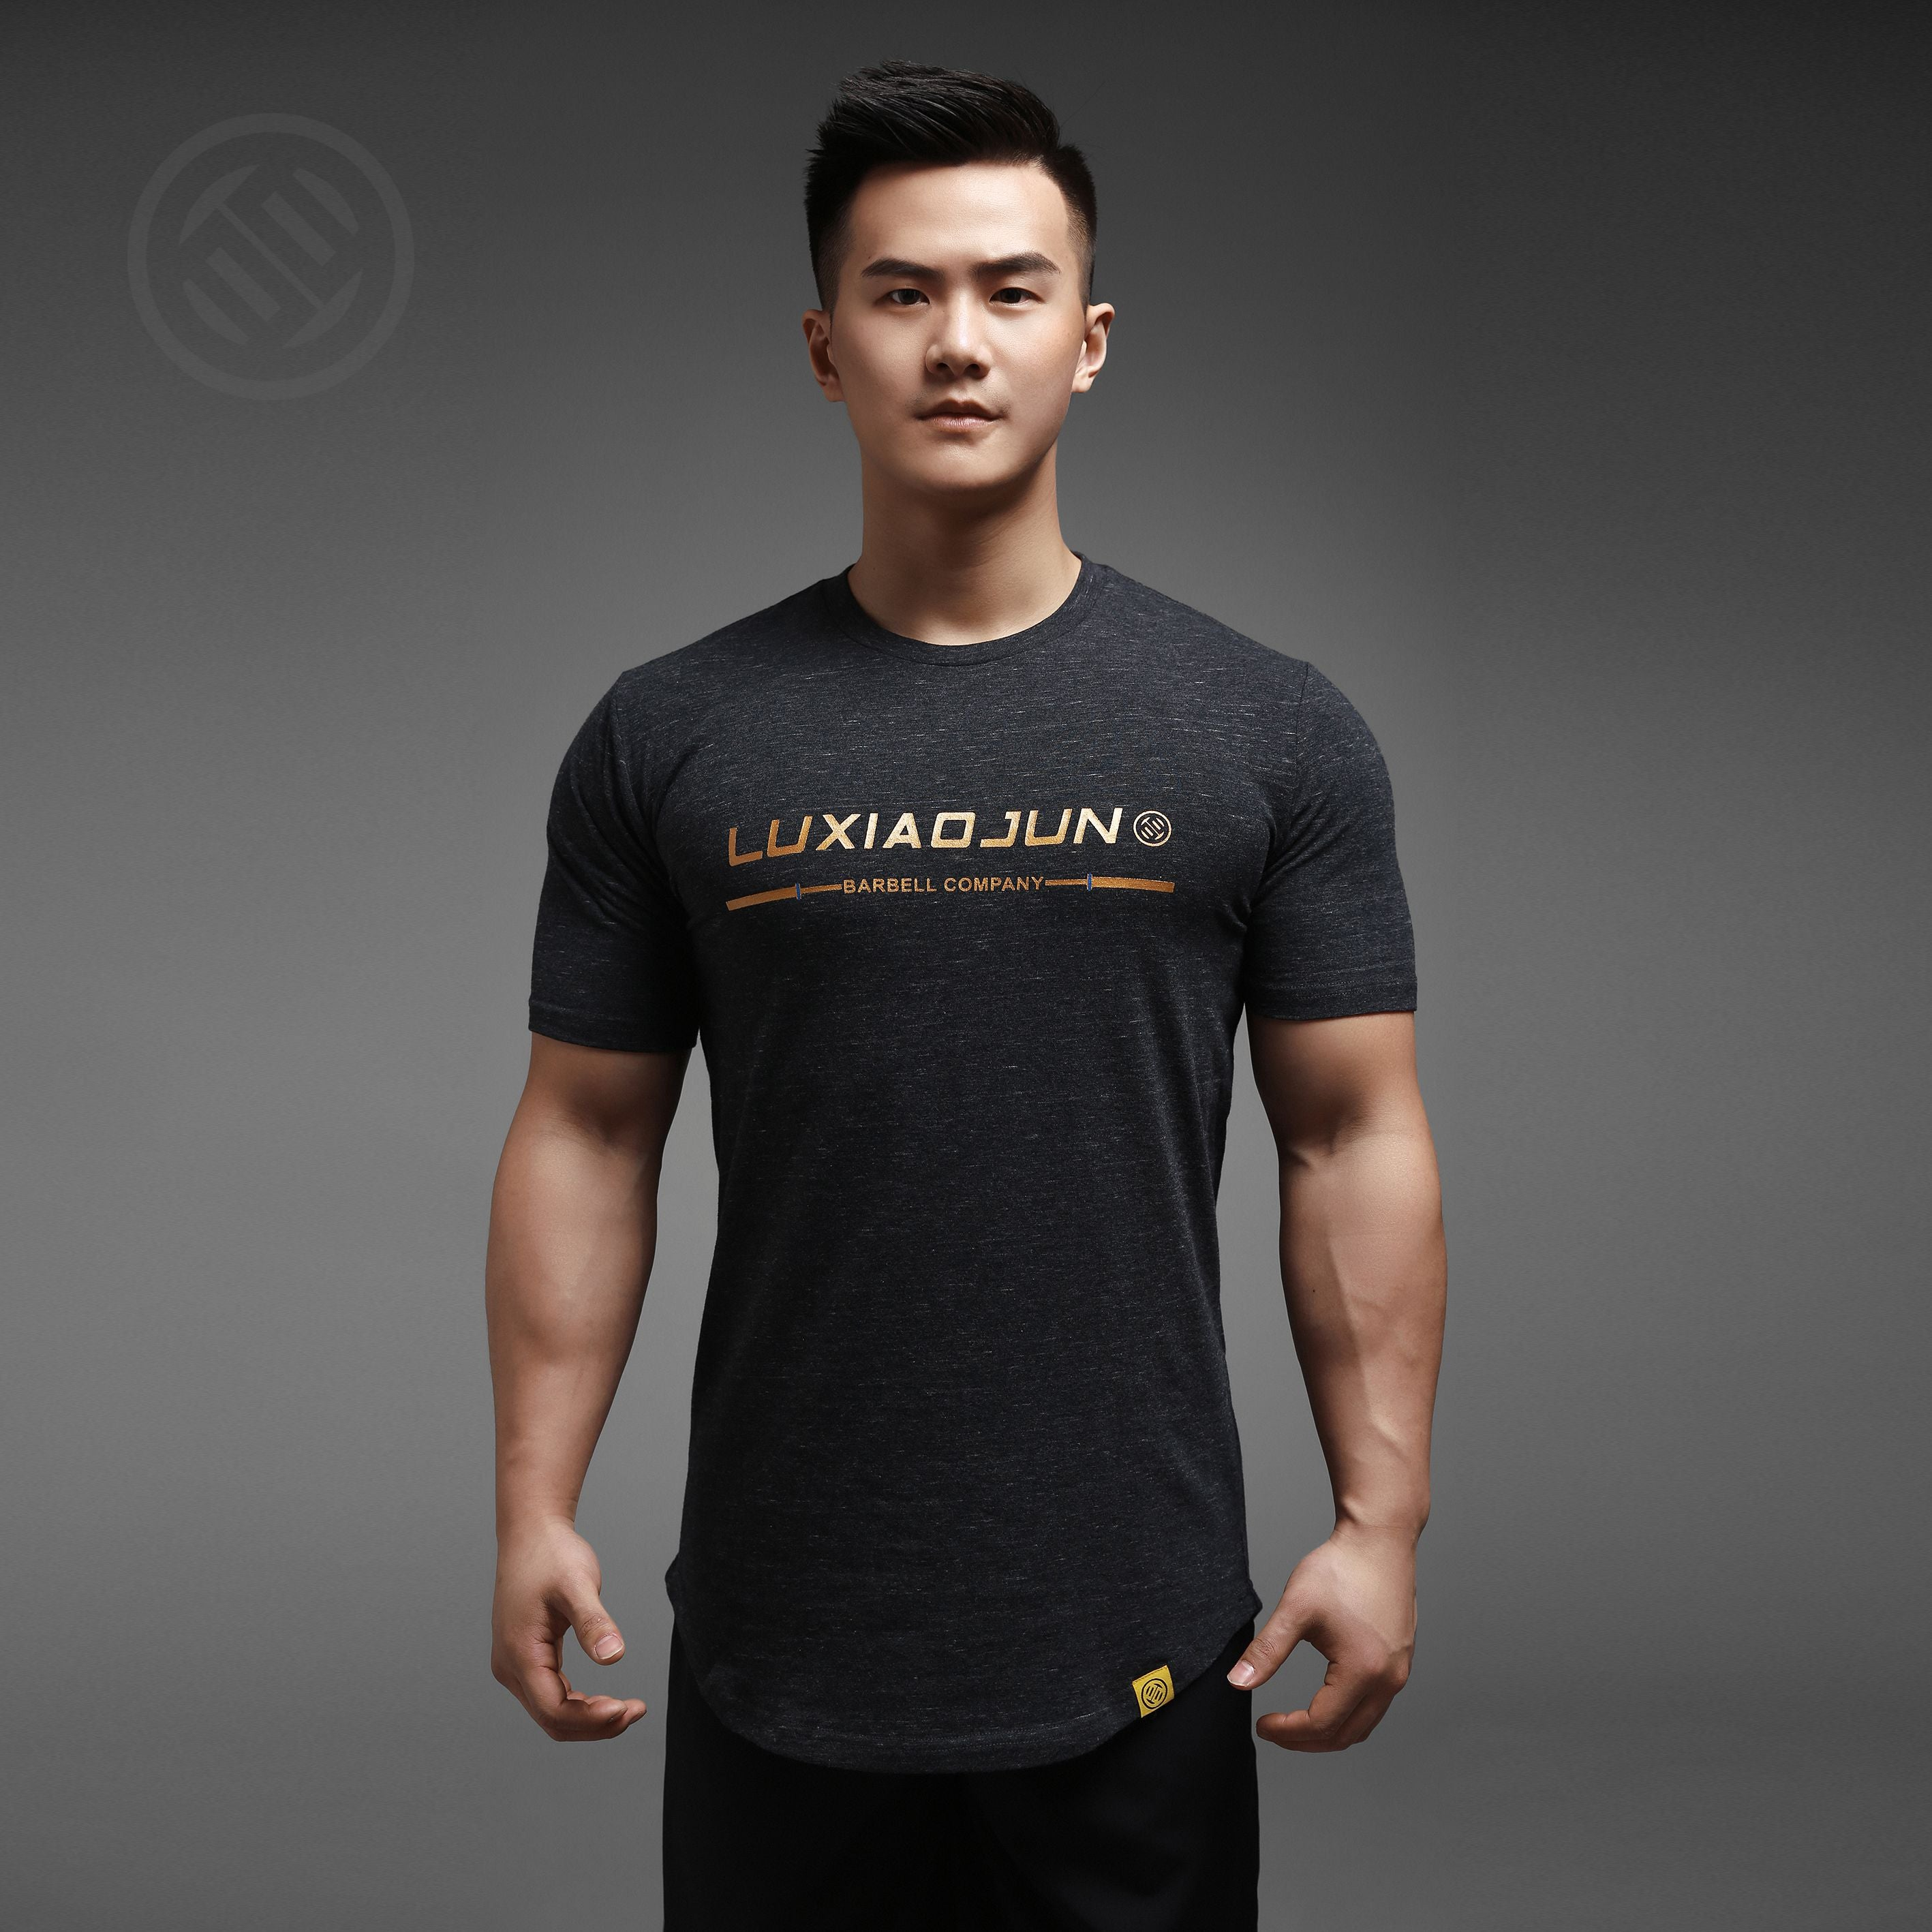 LUXIAOJUN Training T-Shirt Gold Script